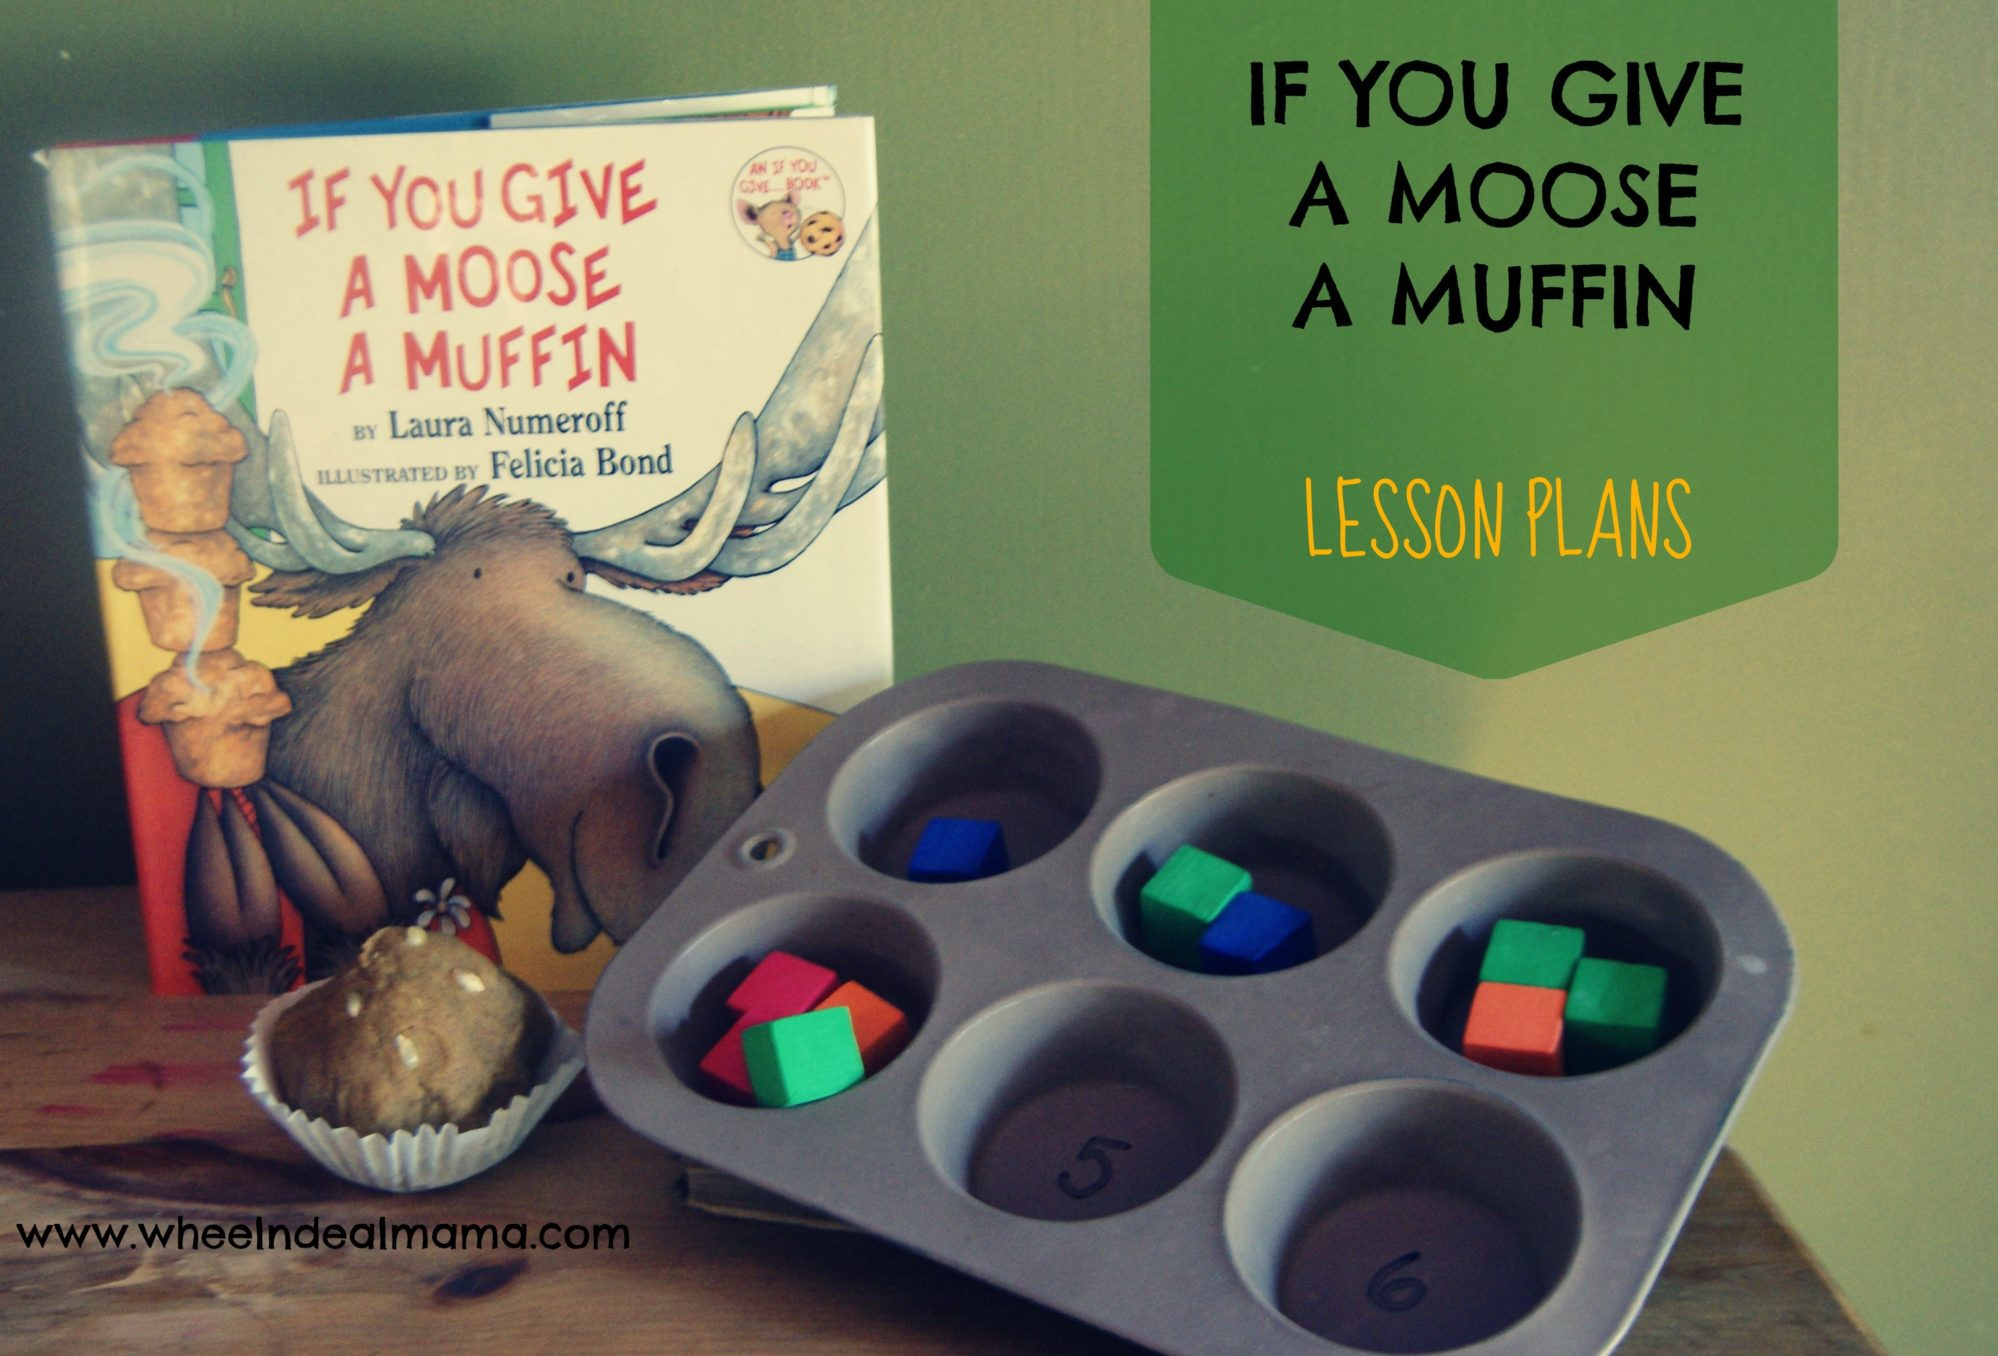 If You Give A Moose A Muffin Lesson Plans